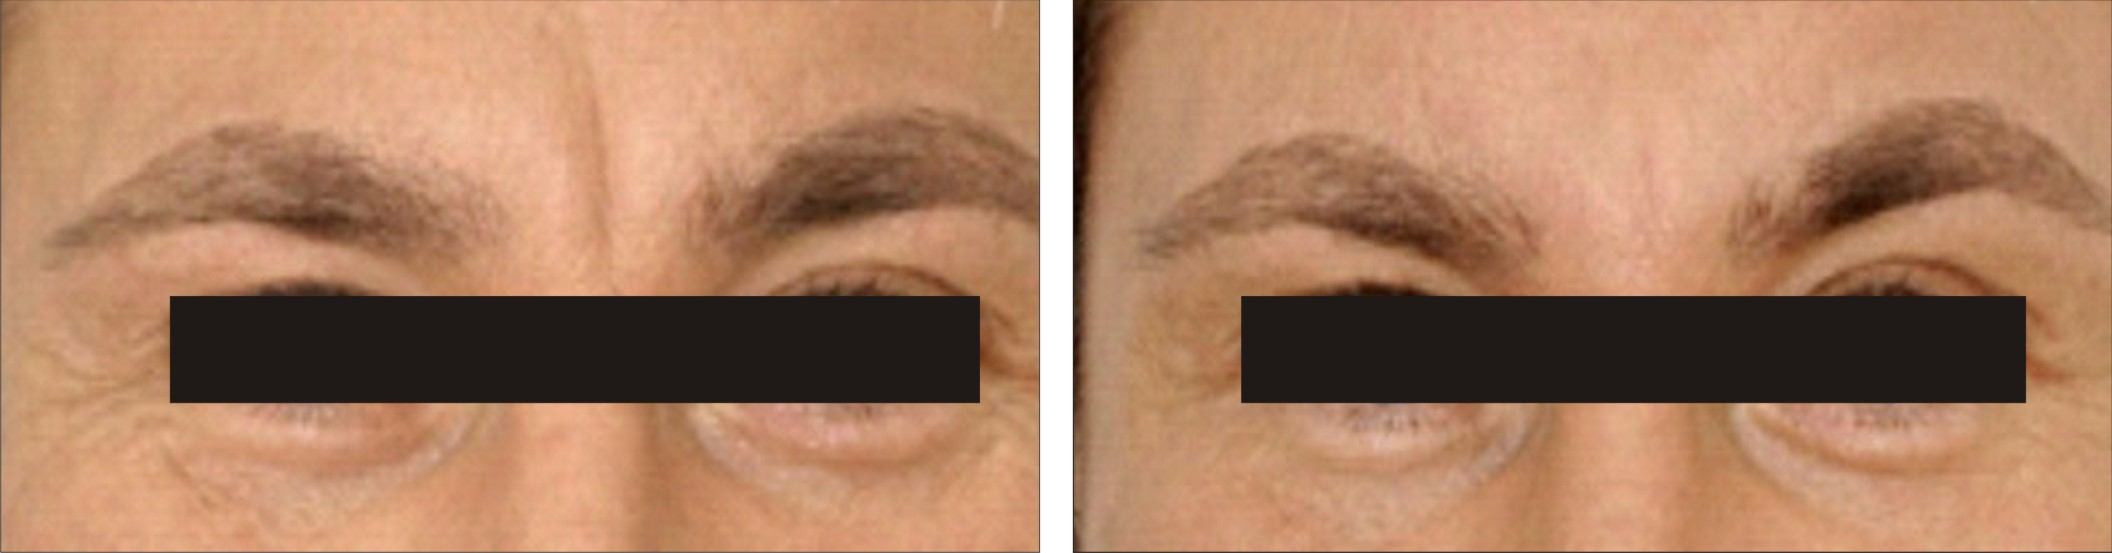 Anti Ageing Treatment Image One